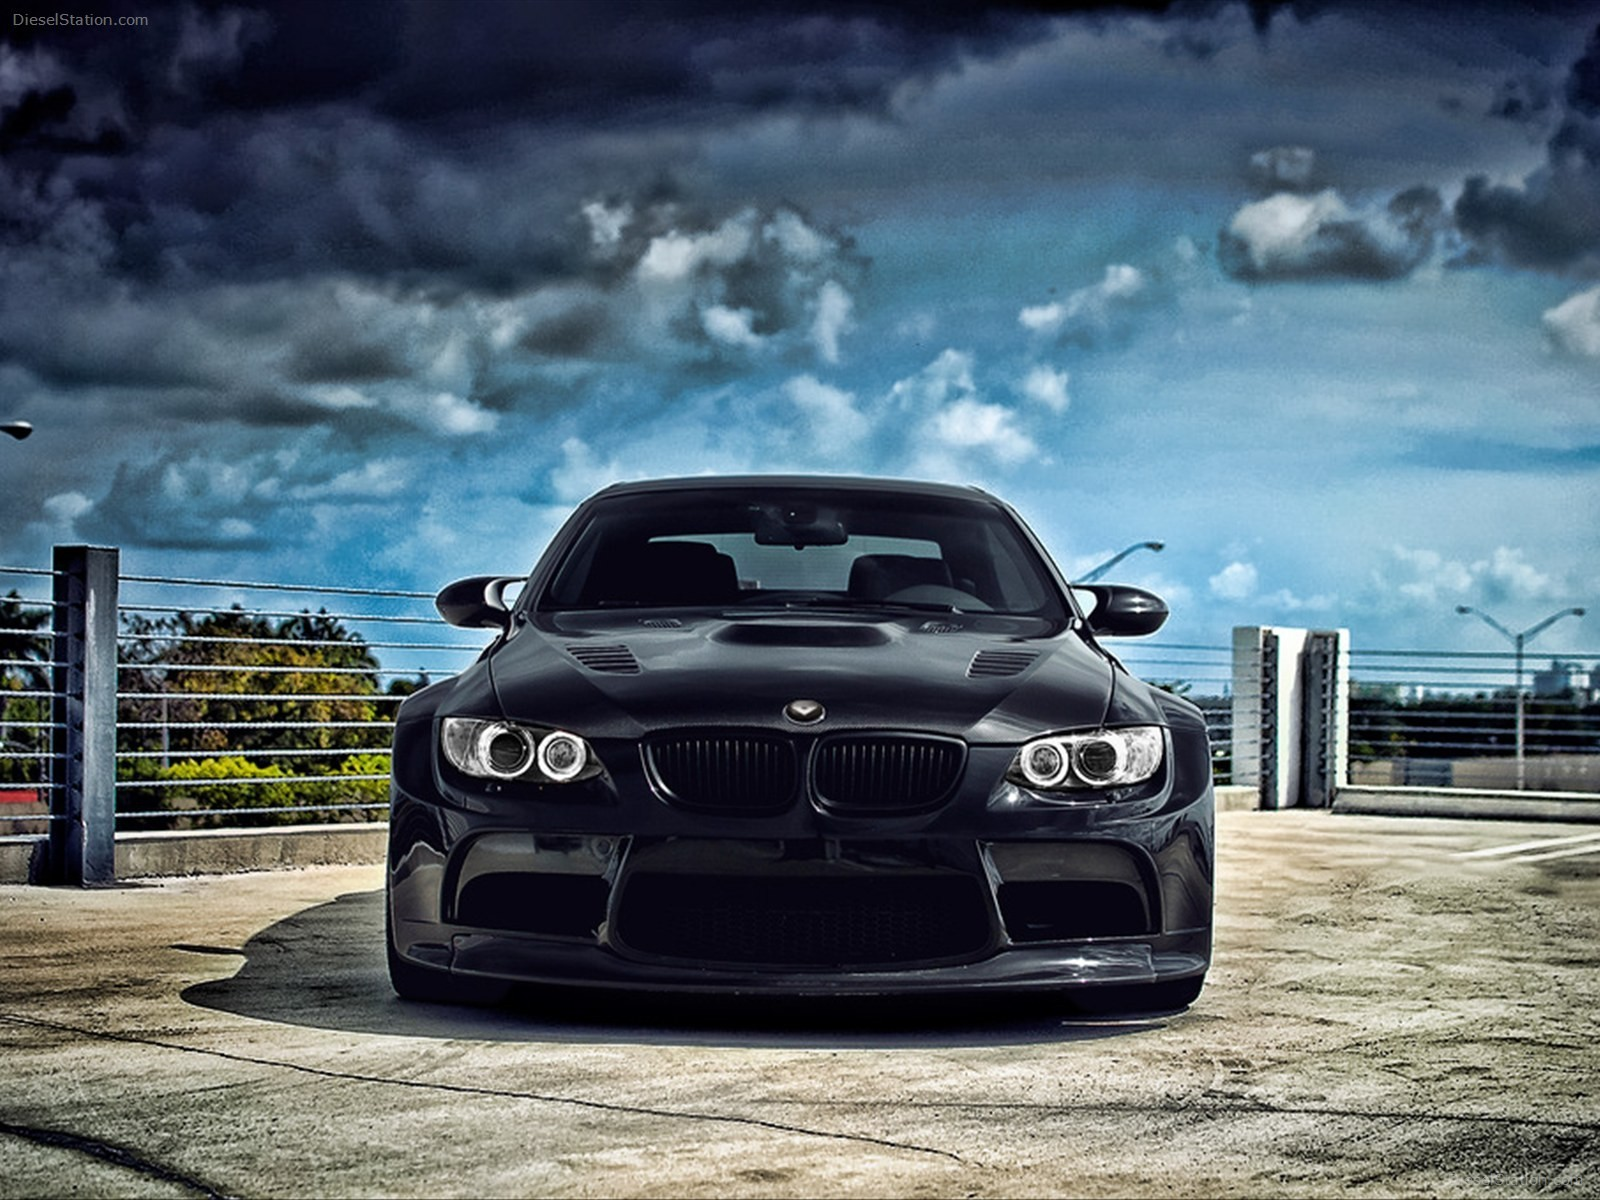 Bmw Cars Hdr Photography Wallpaper 1600x1200 210132